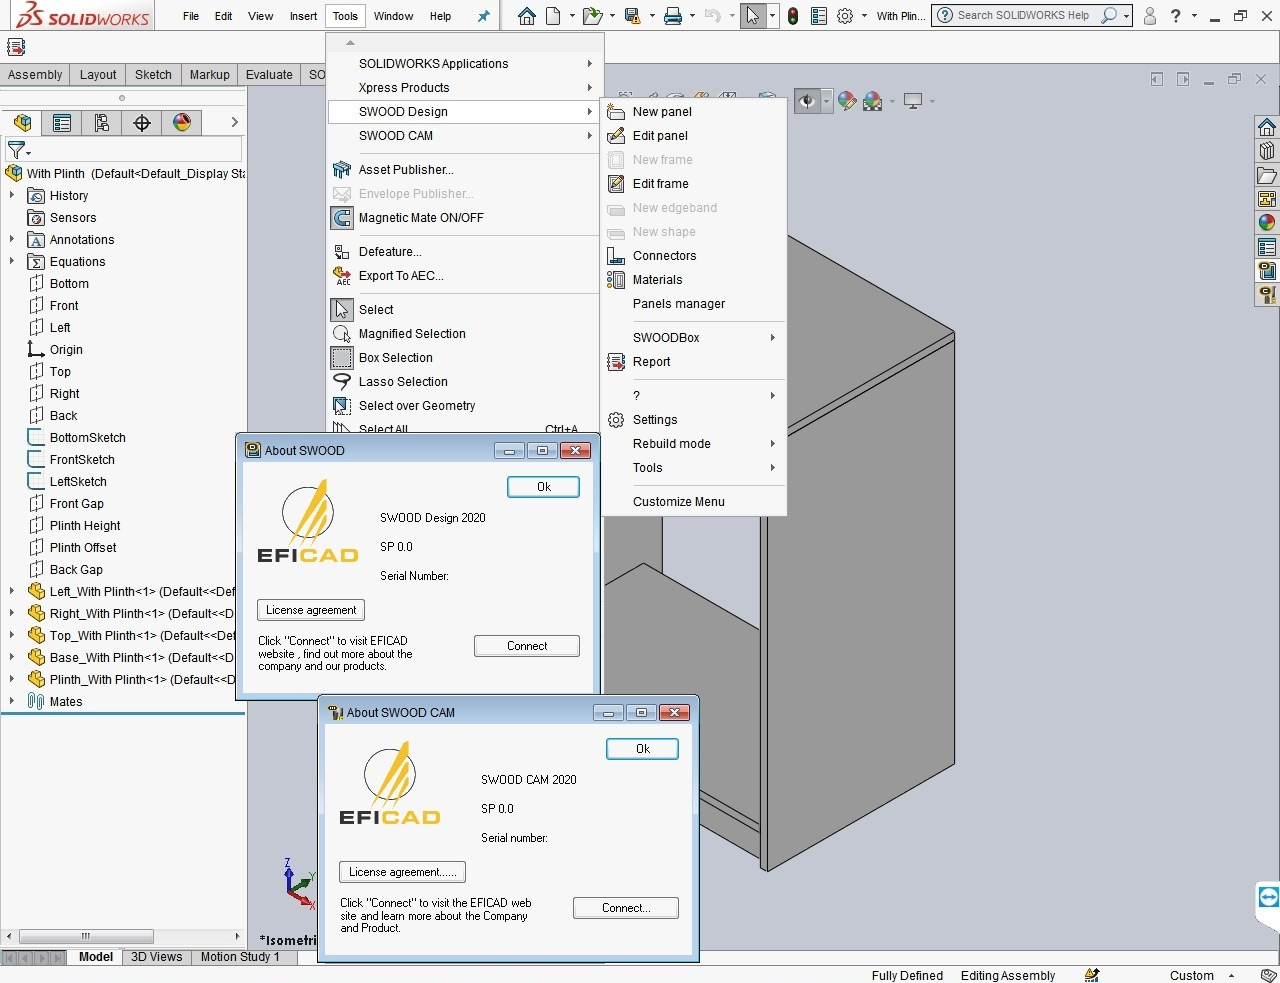 Working with EFICAD SWOOD 2020 SP0 for SOLIDWORKS 2010-2020 full license